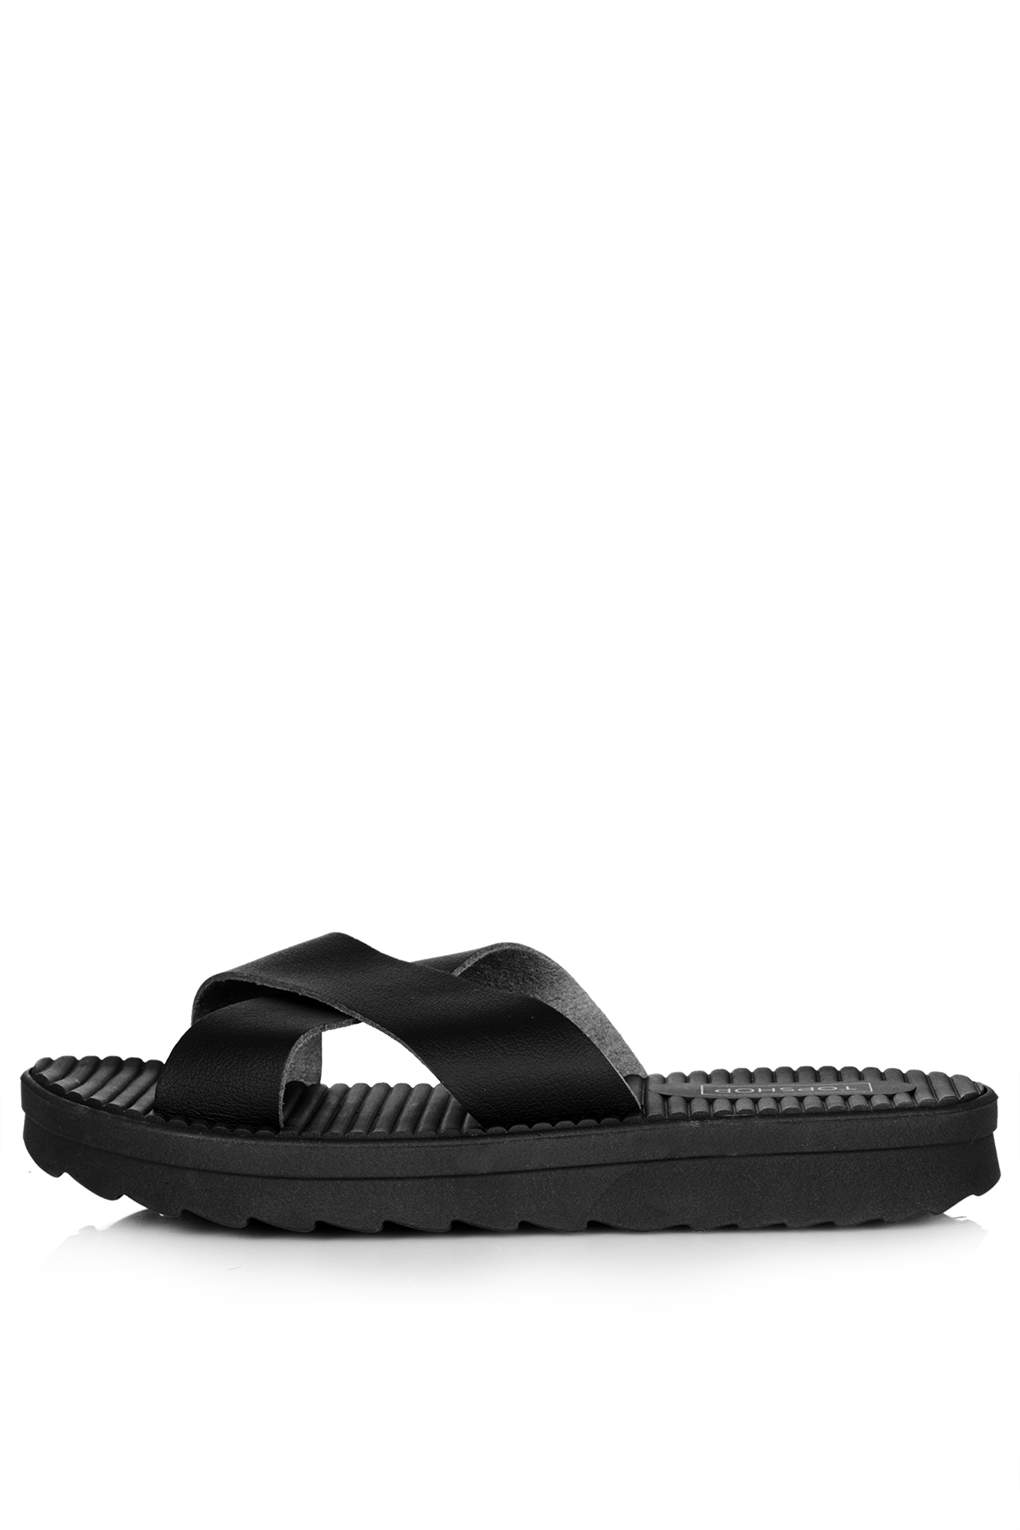 HEAT Pool Sliders - Sliders - Flats - Shoes